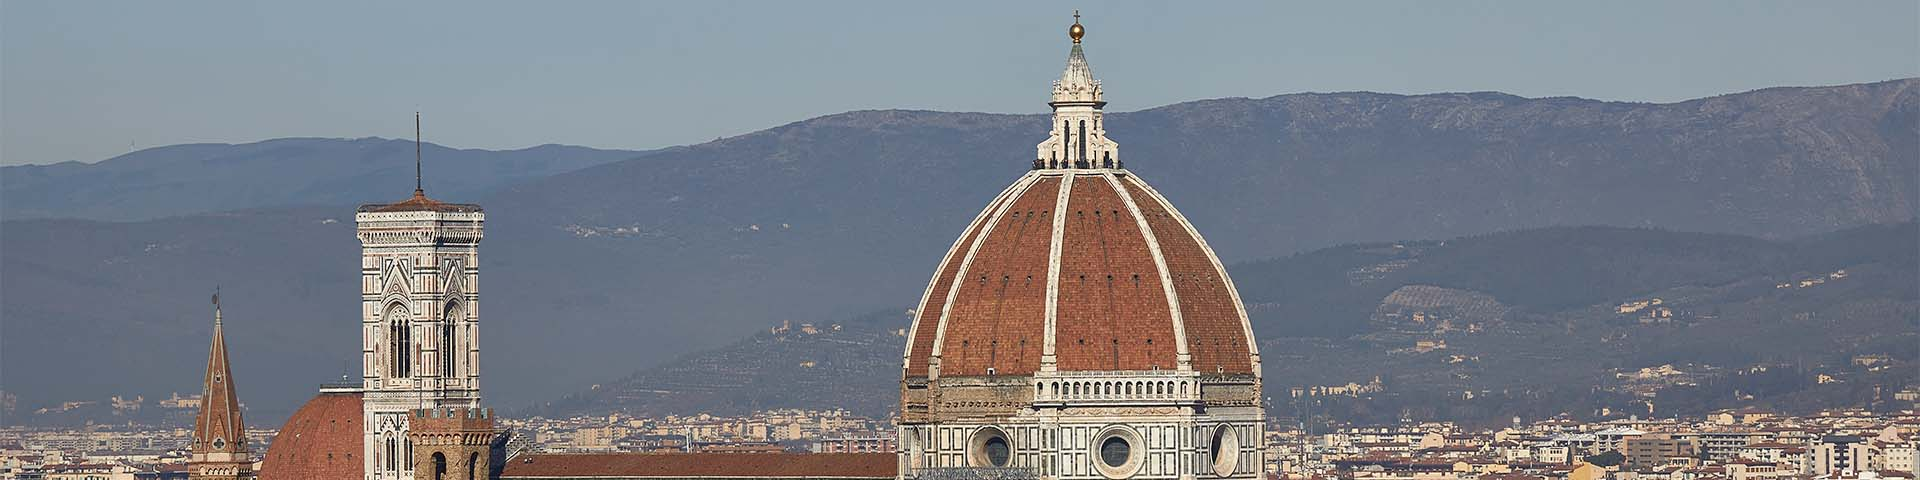 The Dome of Santa Mria del Fiore